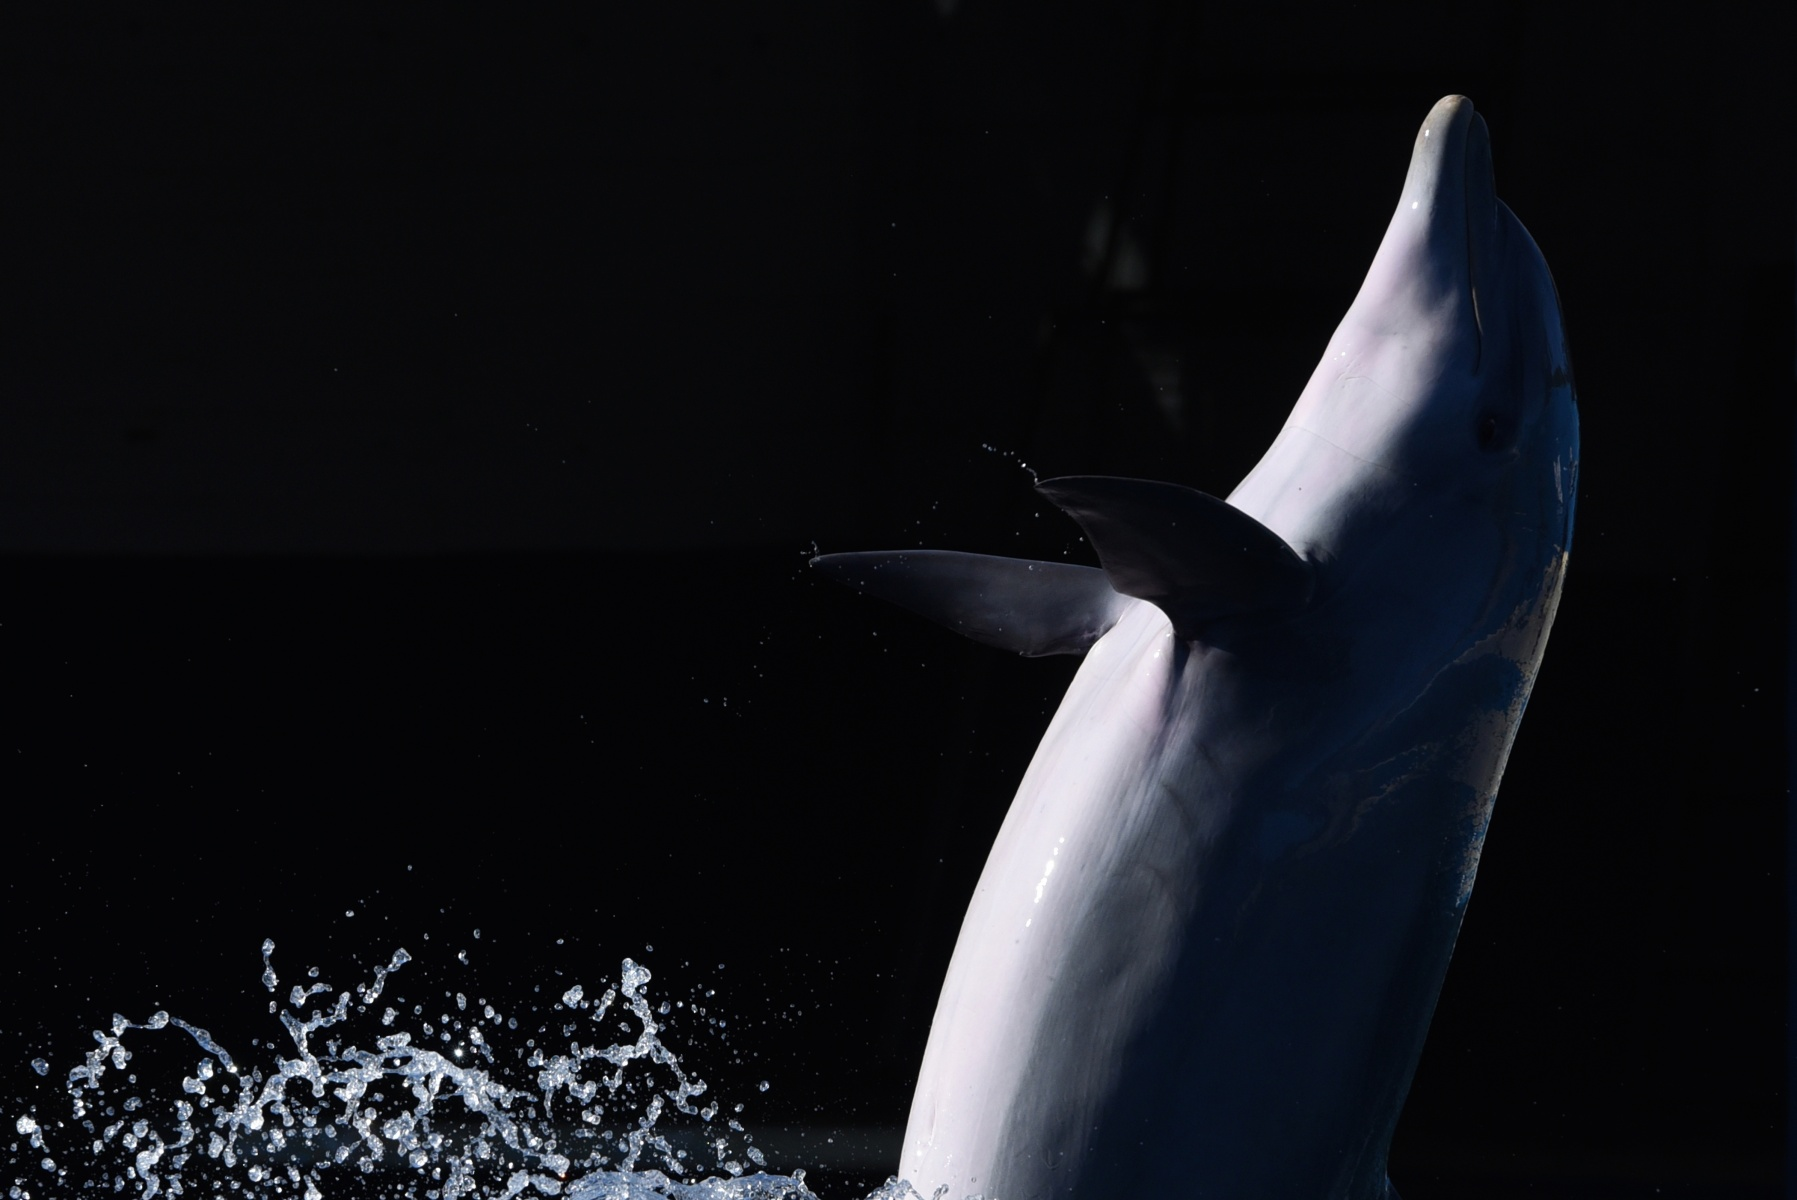 A Common bottlenose dolphin (Tursiops truncatus truncatus) pictured during a show at Madrid Zoo and Aquarium. (Photo by Jorge Sanz/Pacific Press/LightRocket via Getty Images)